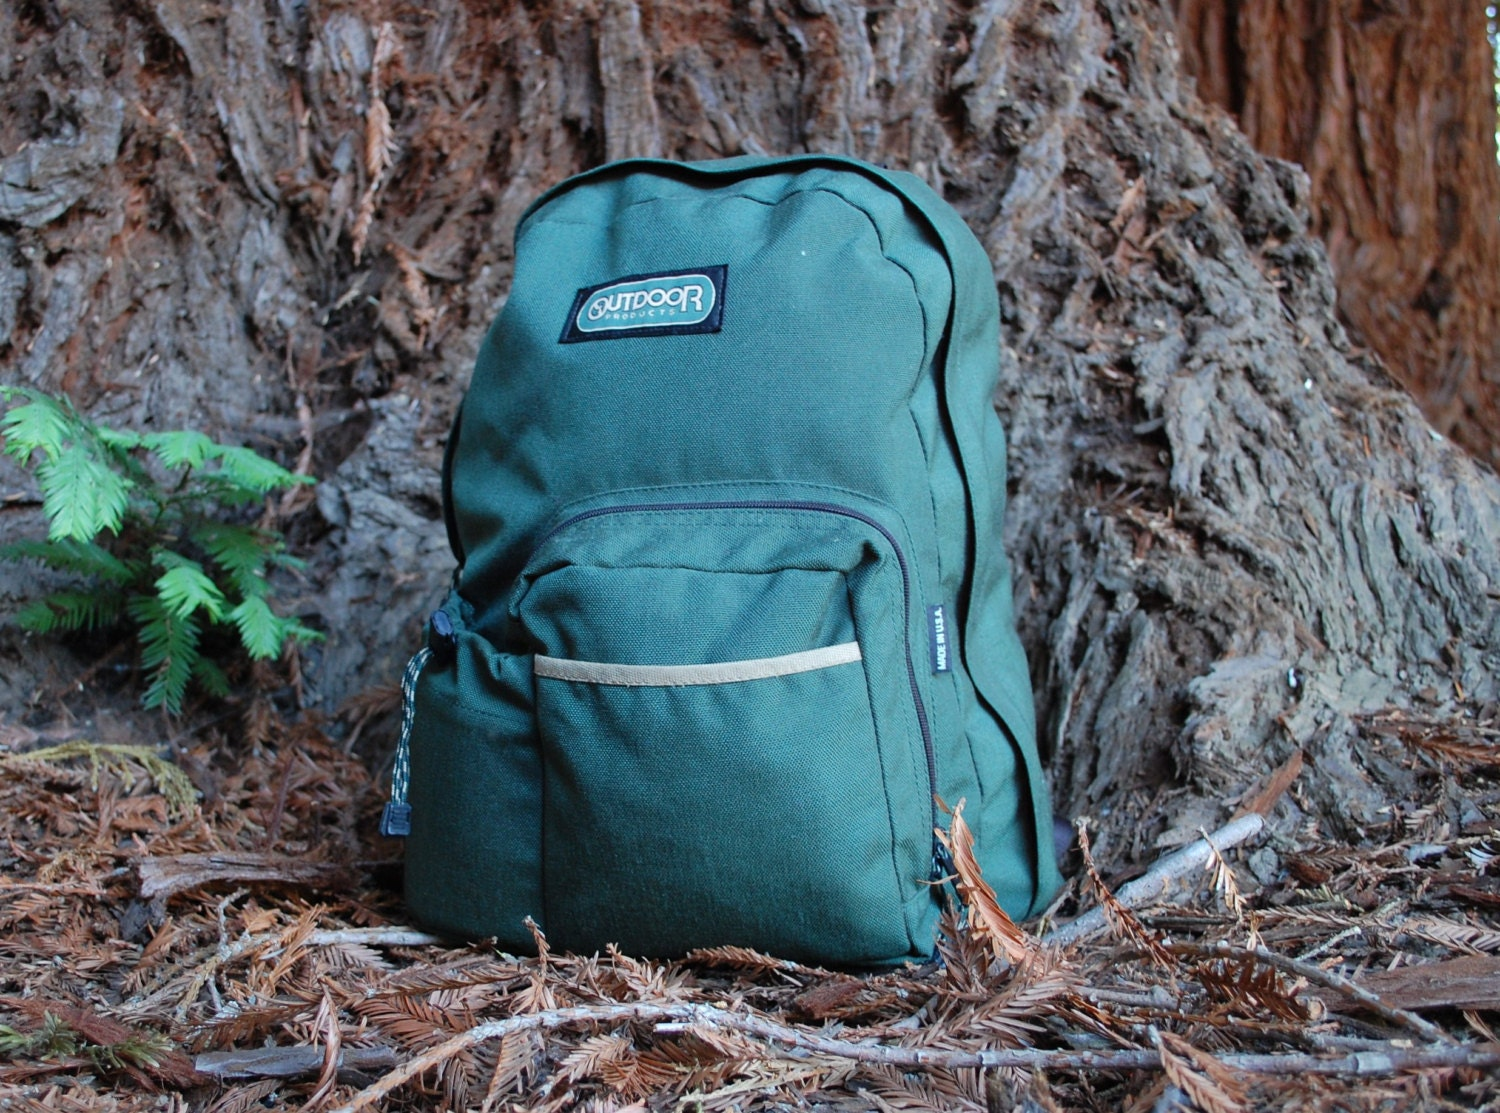 Rugged Outdoor Products Forest Green Hiking 90s 80s Backpack